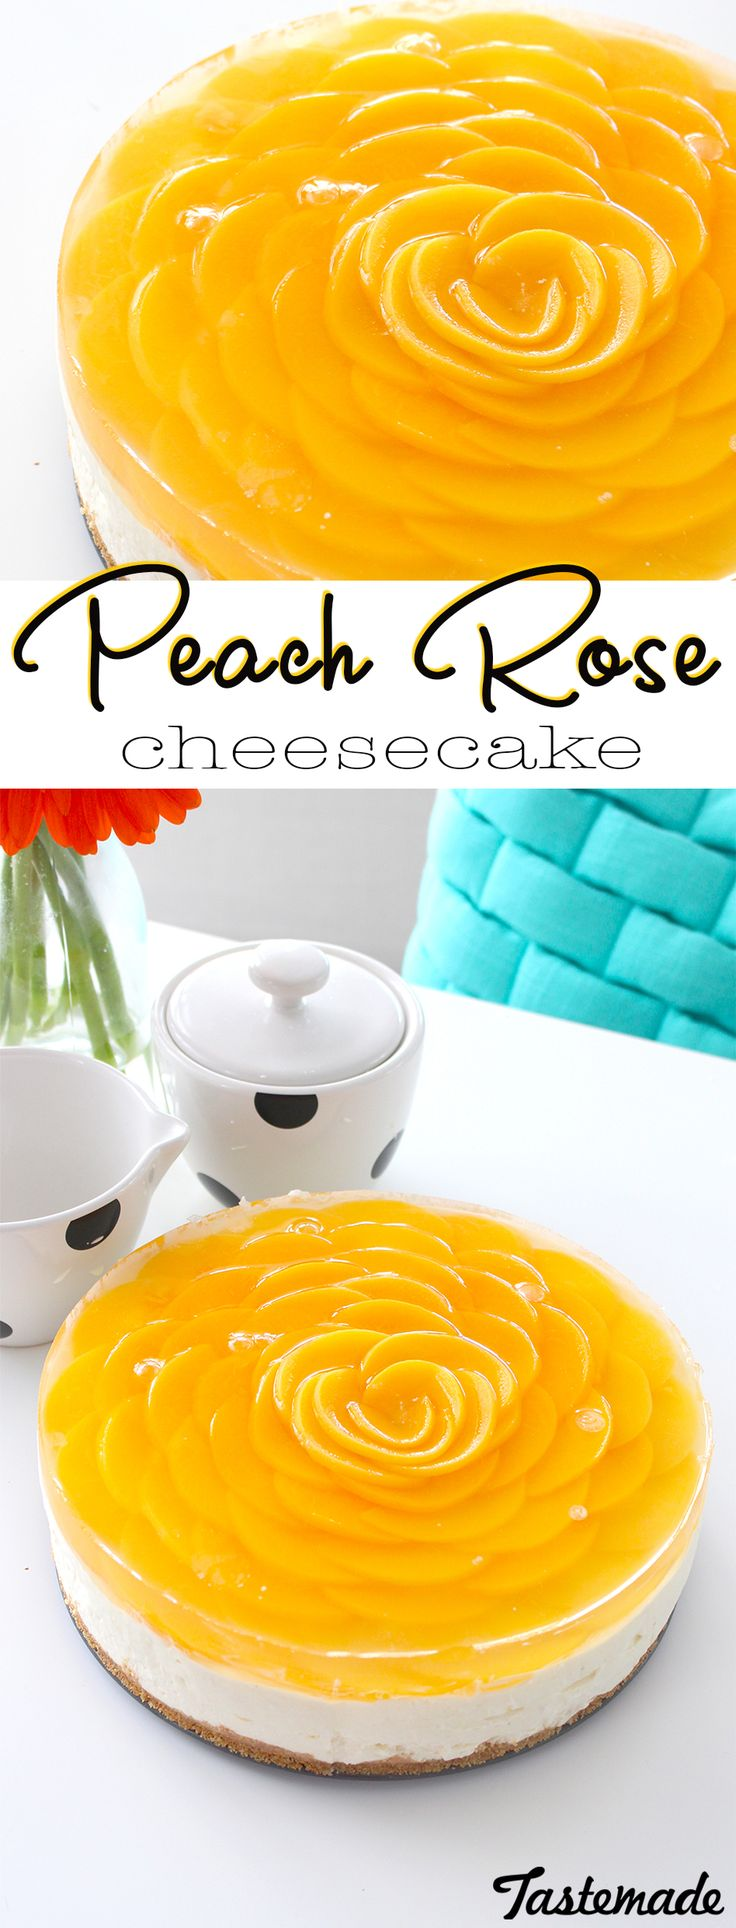 Peach slices are arranged on top of this no-bake cheesecake to look like a beautiful flower!